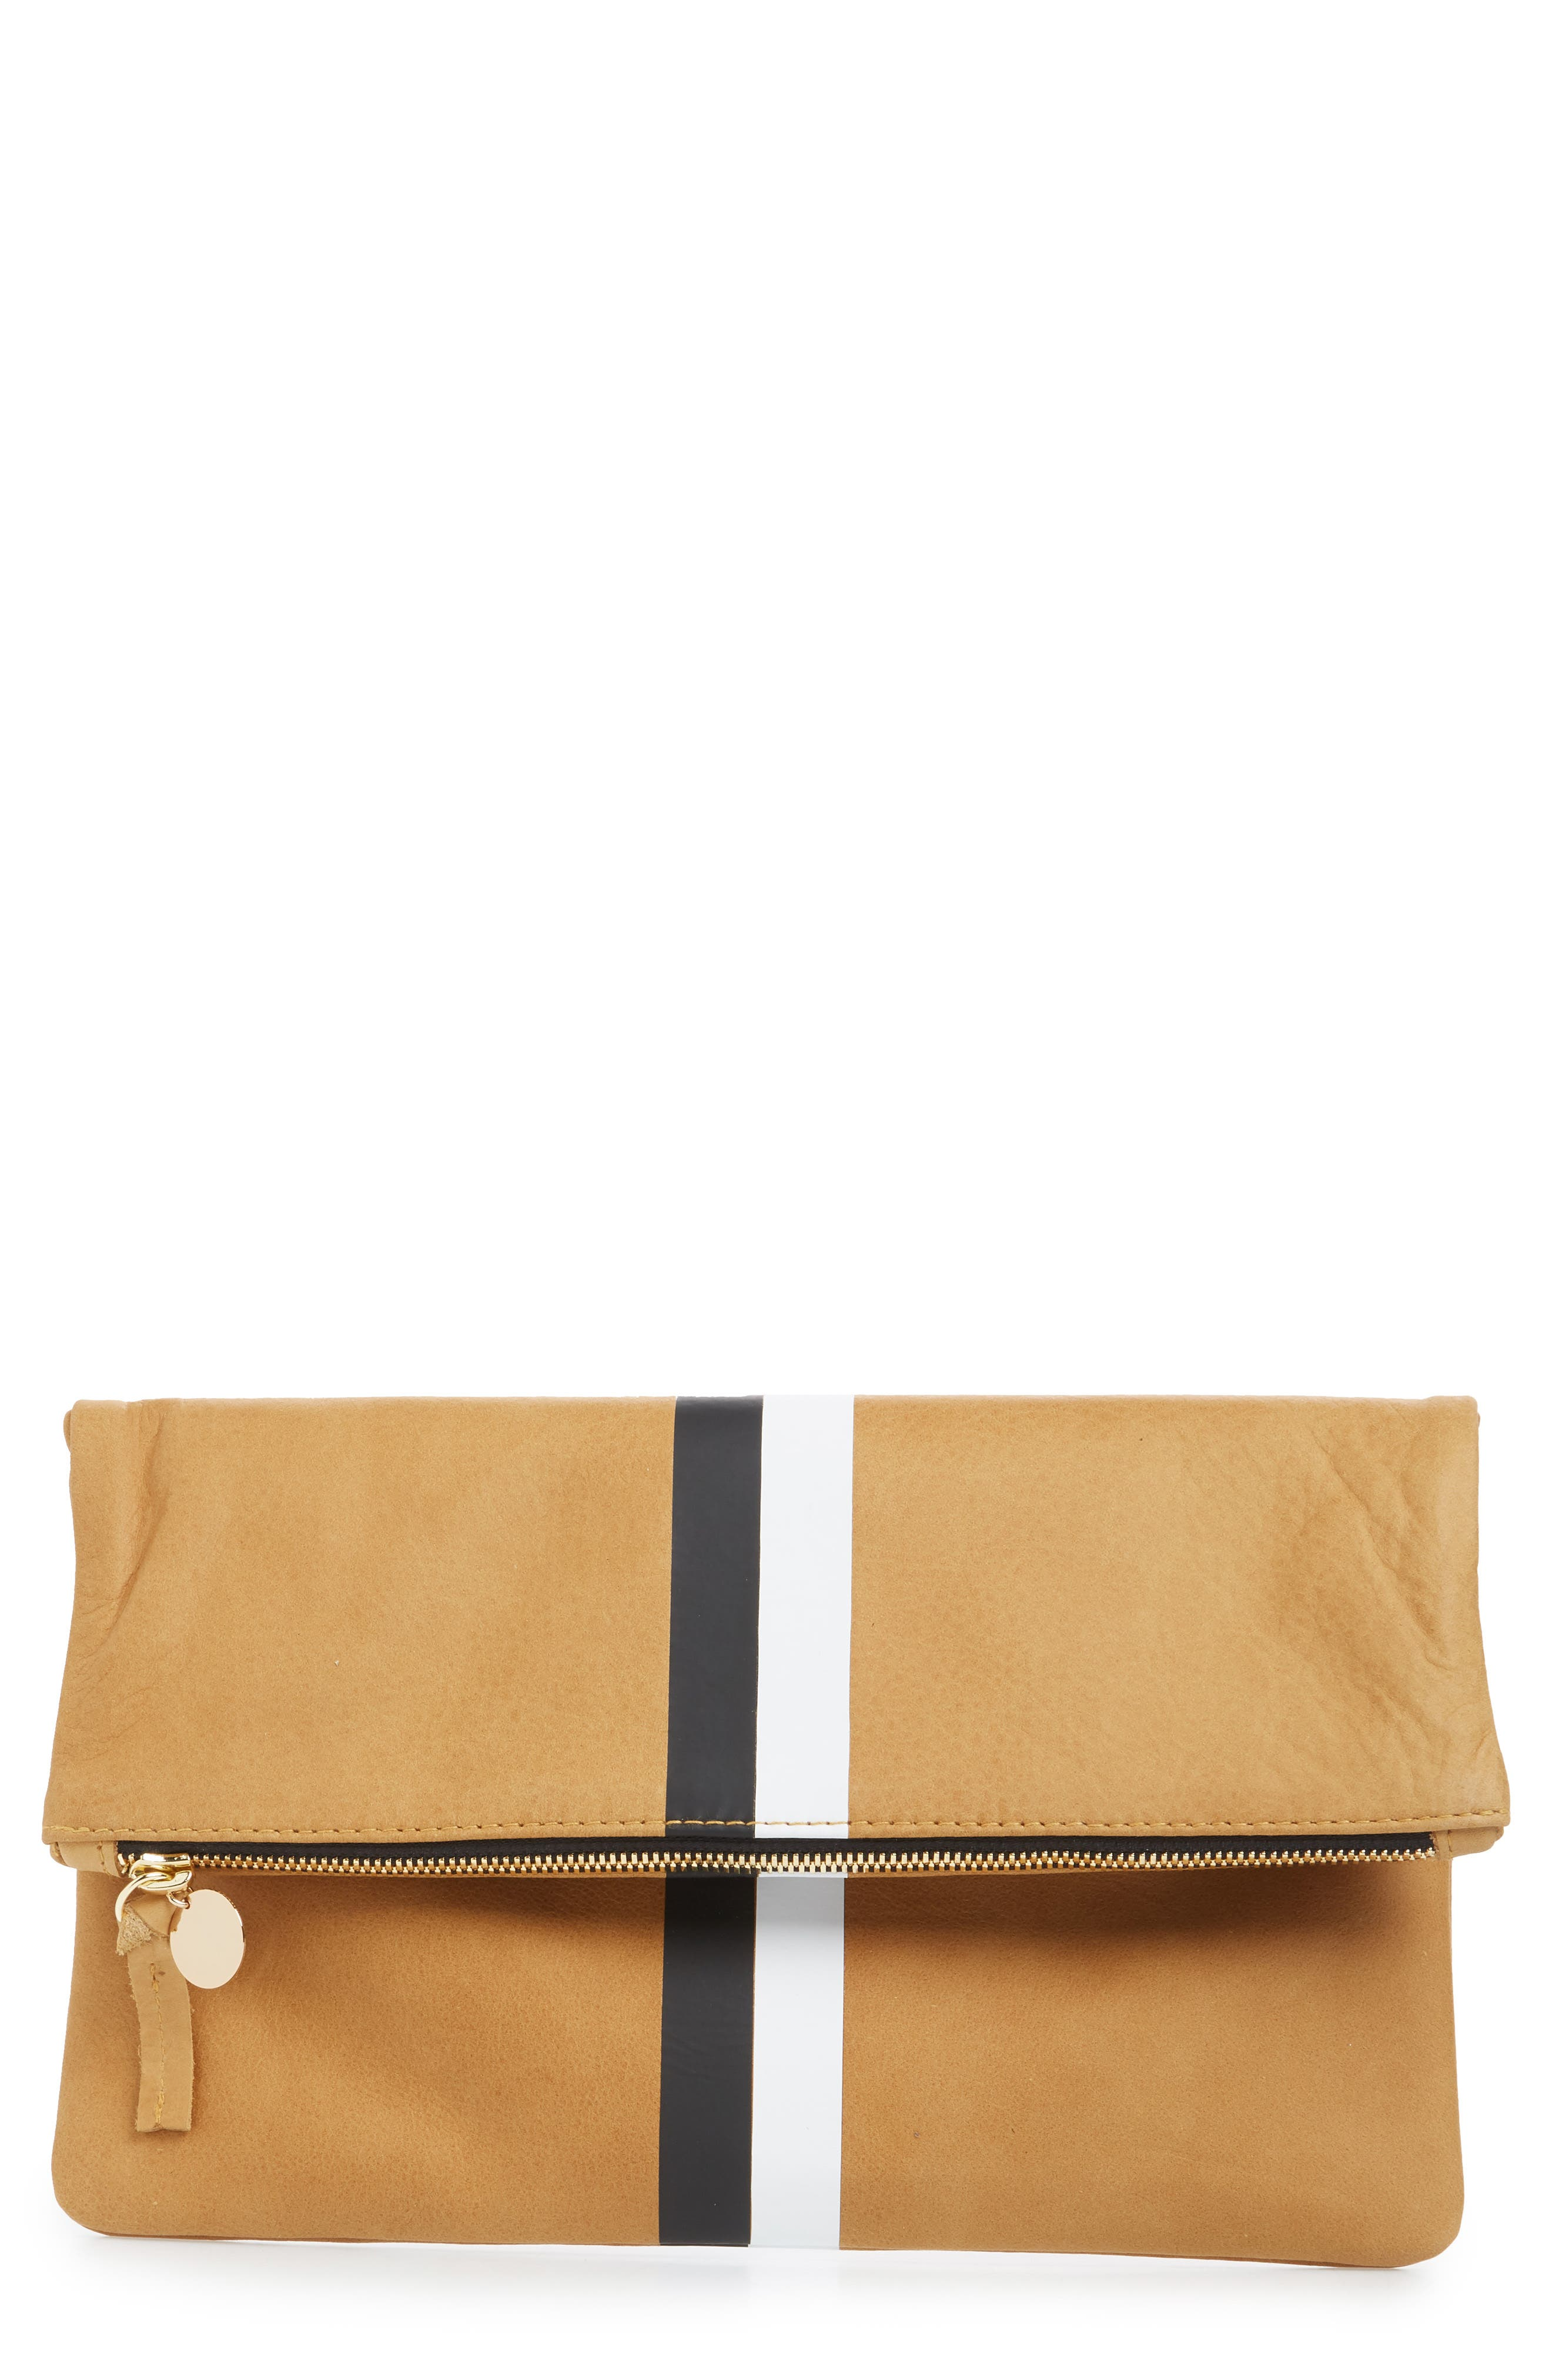 Center Stripe Leather Foldover Clutch,                             Main thumbnail 1, color,                             Camel